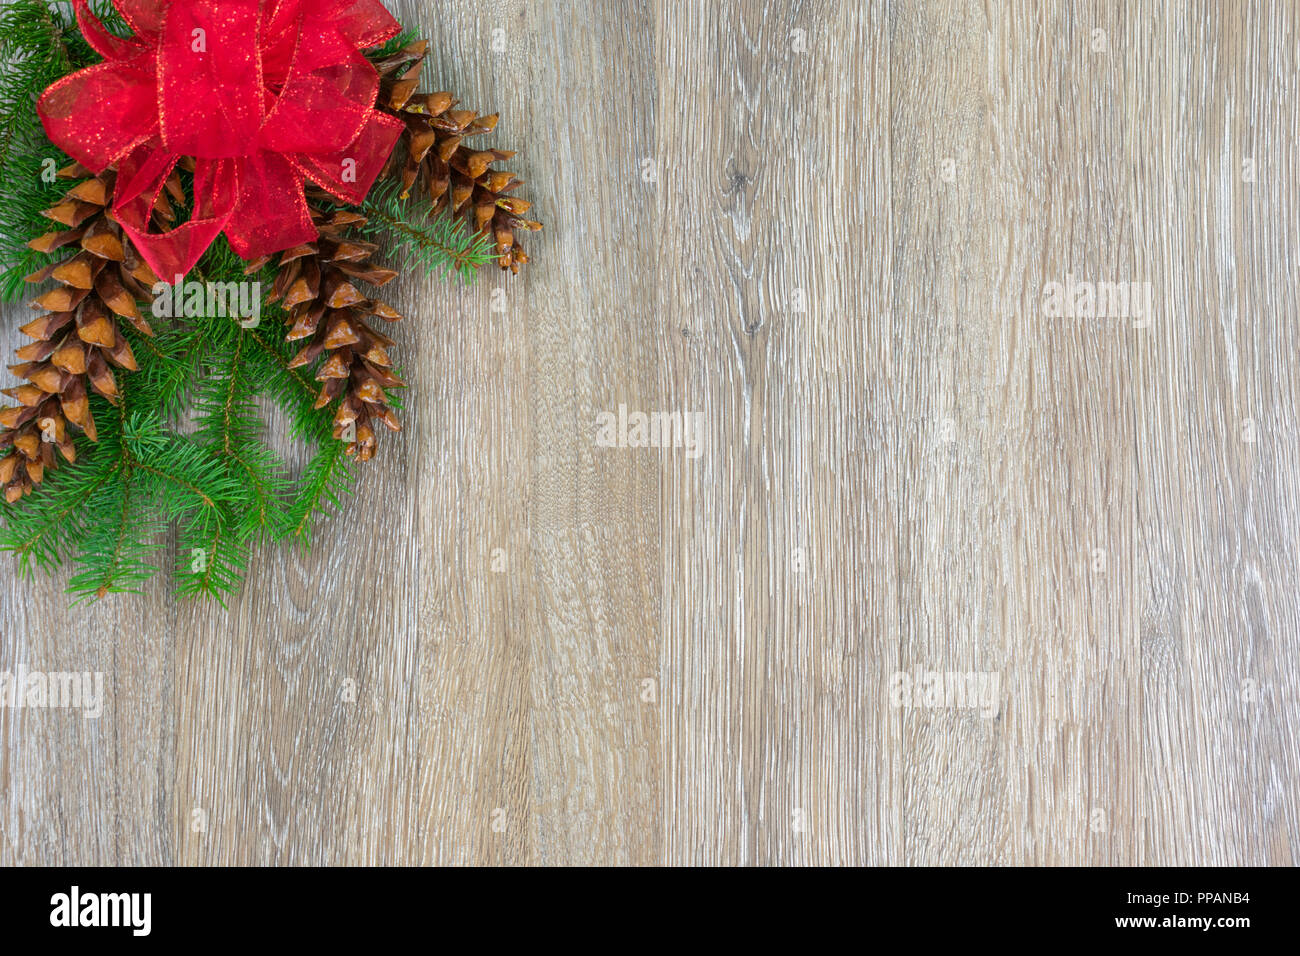 A red bow and three white pine cones on spruce boughs with copy space Stock Photo